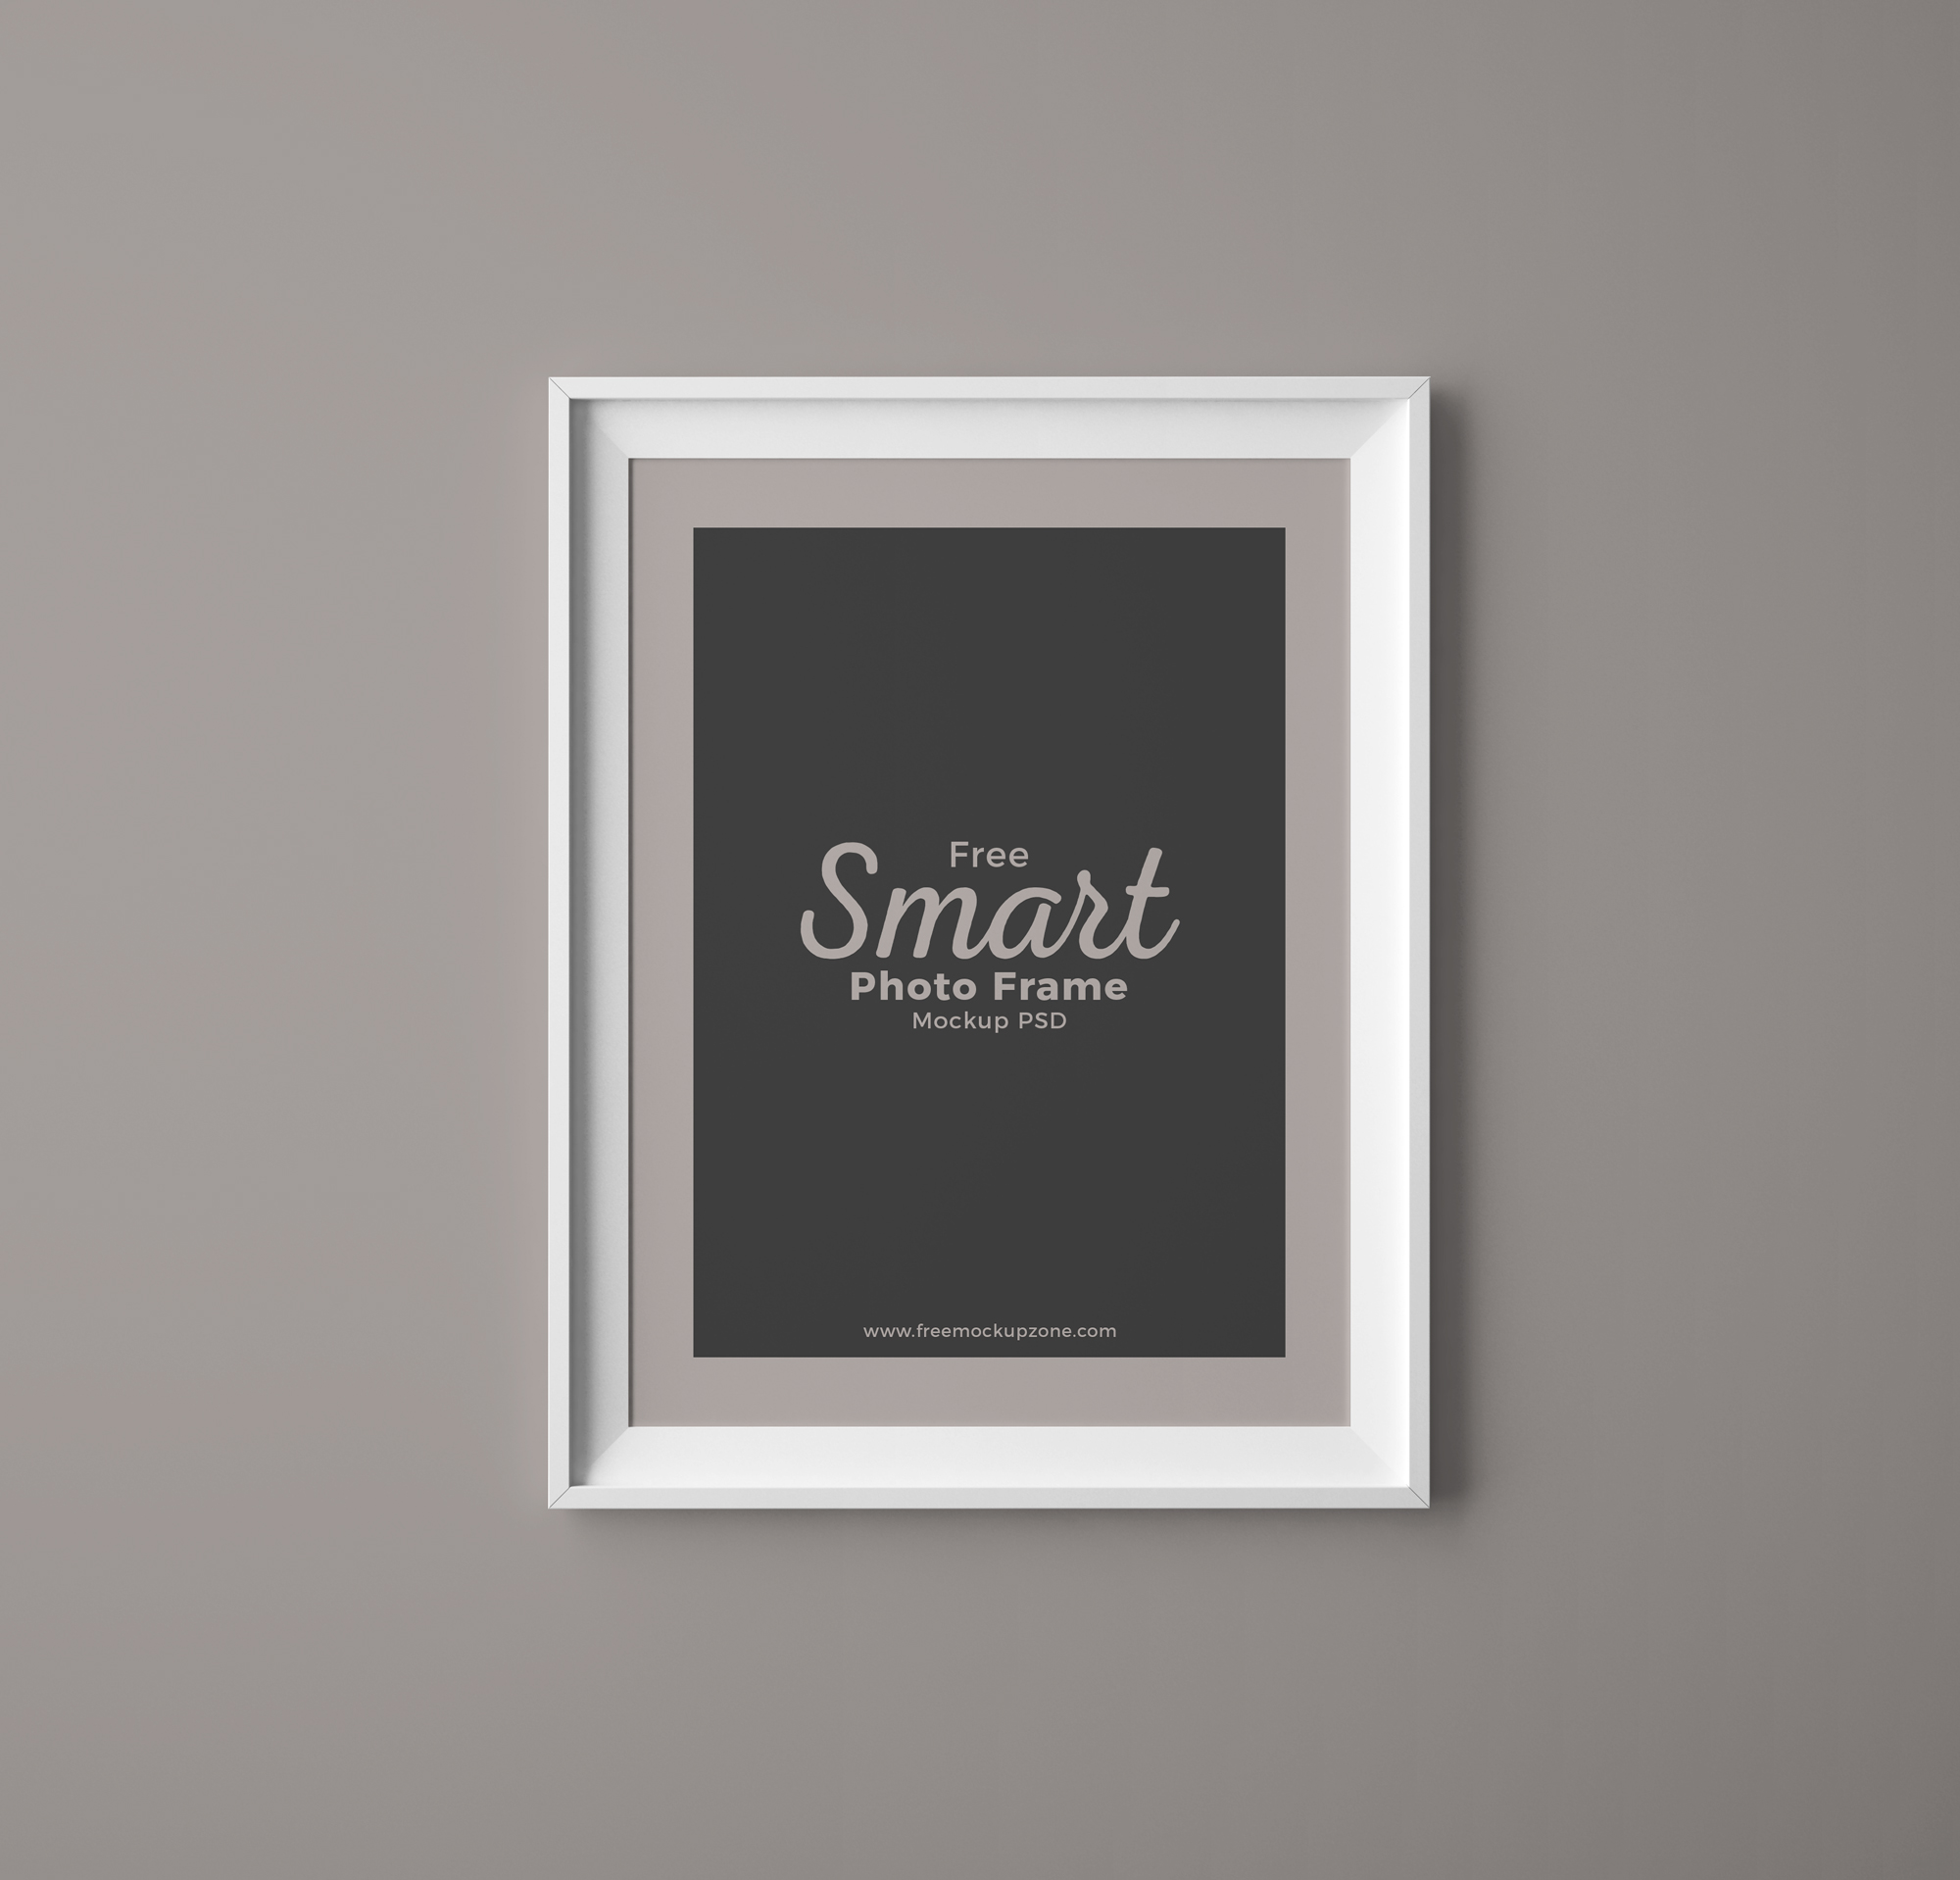 Free-Smart-Photo-Frame-Mockup-PSD